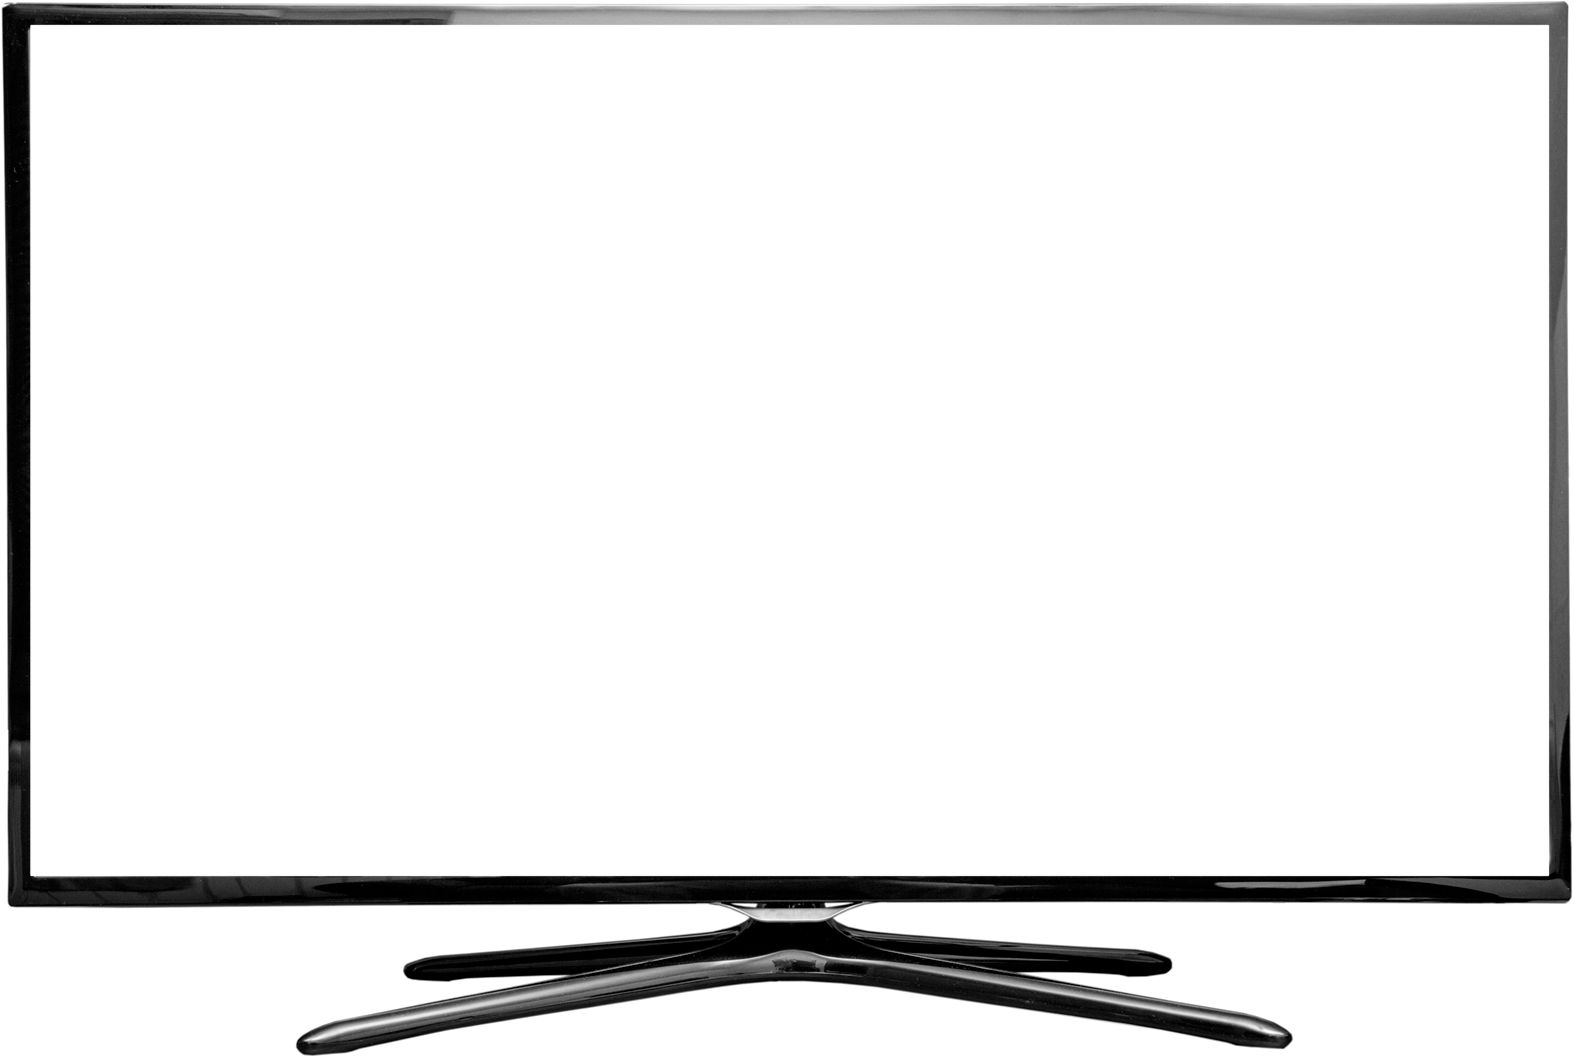 Tv frame png. Images old free download